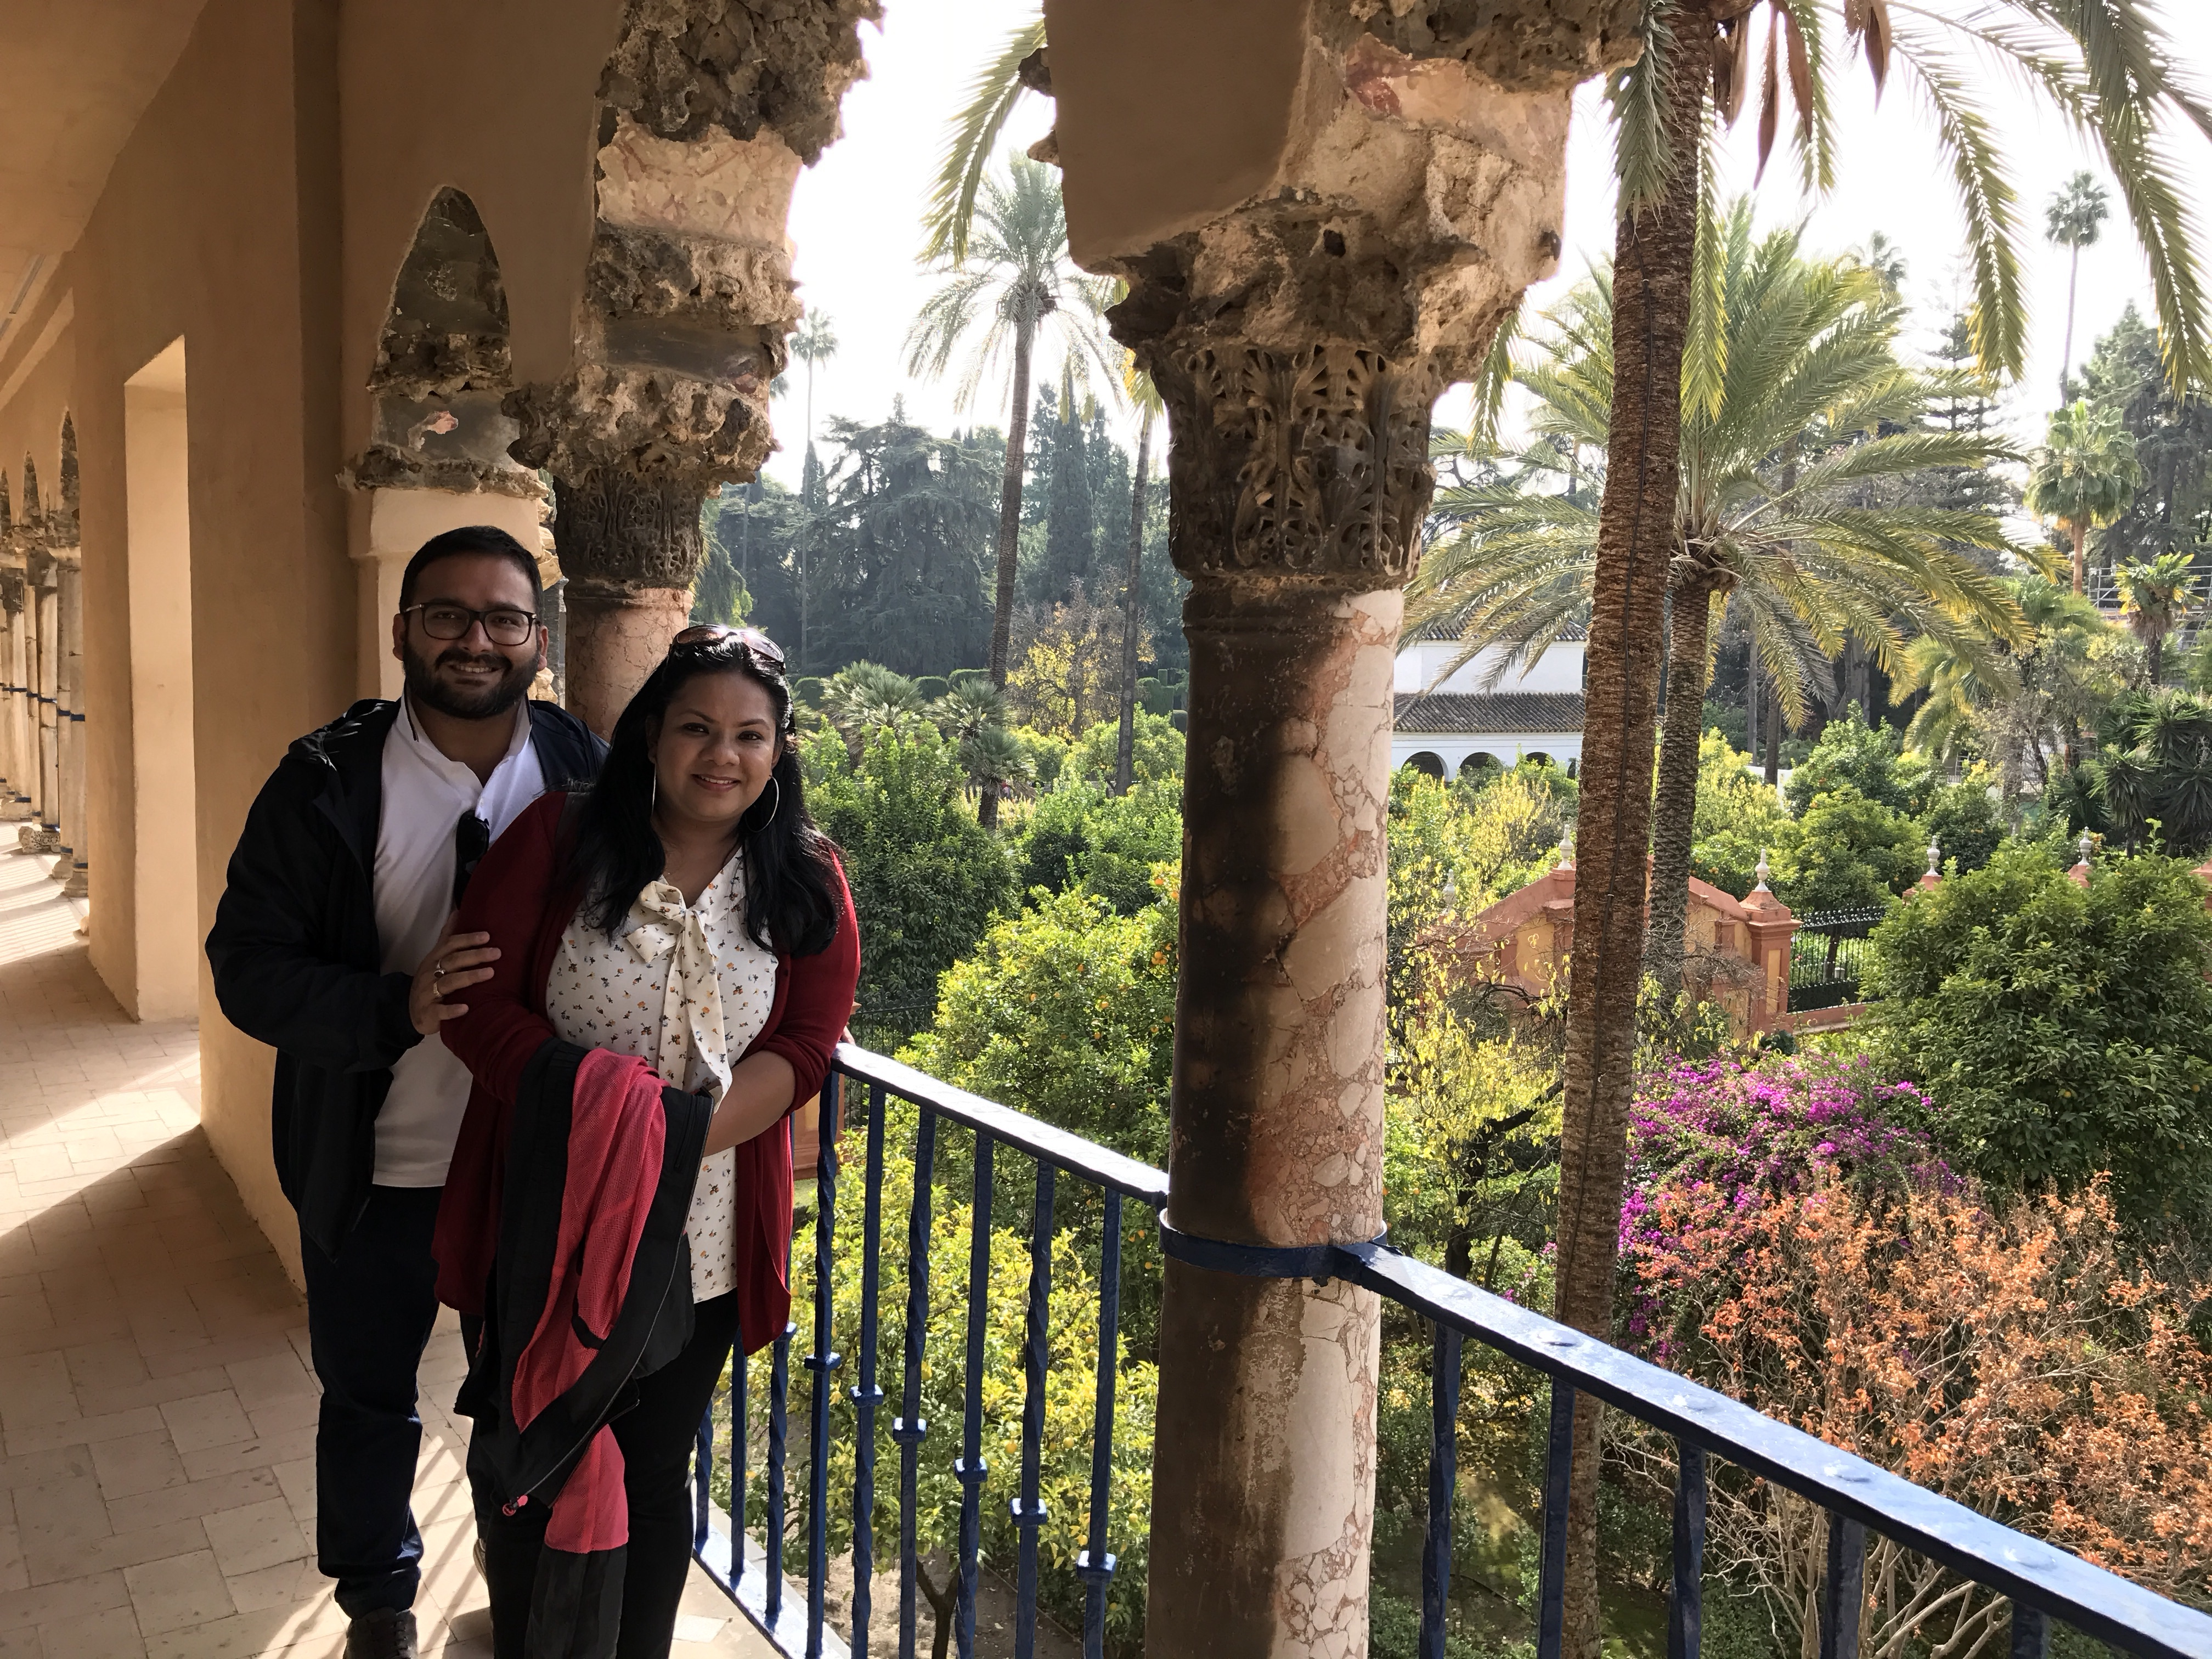 Us at Royal Alcazar Seville.